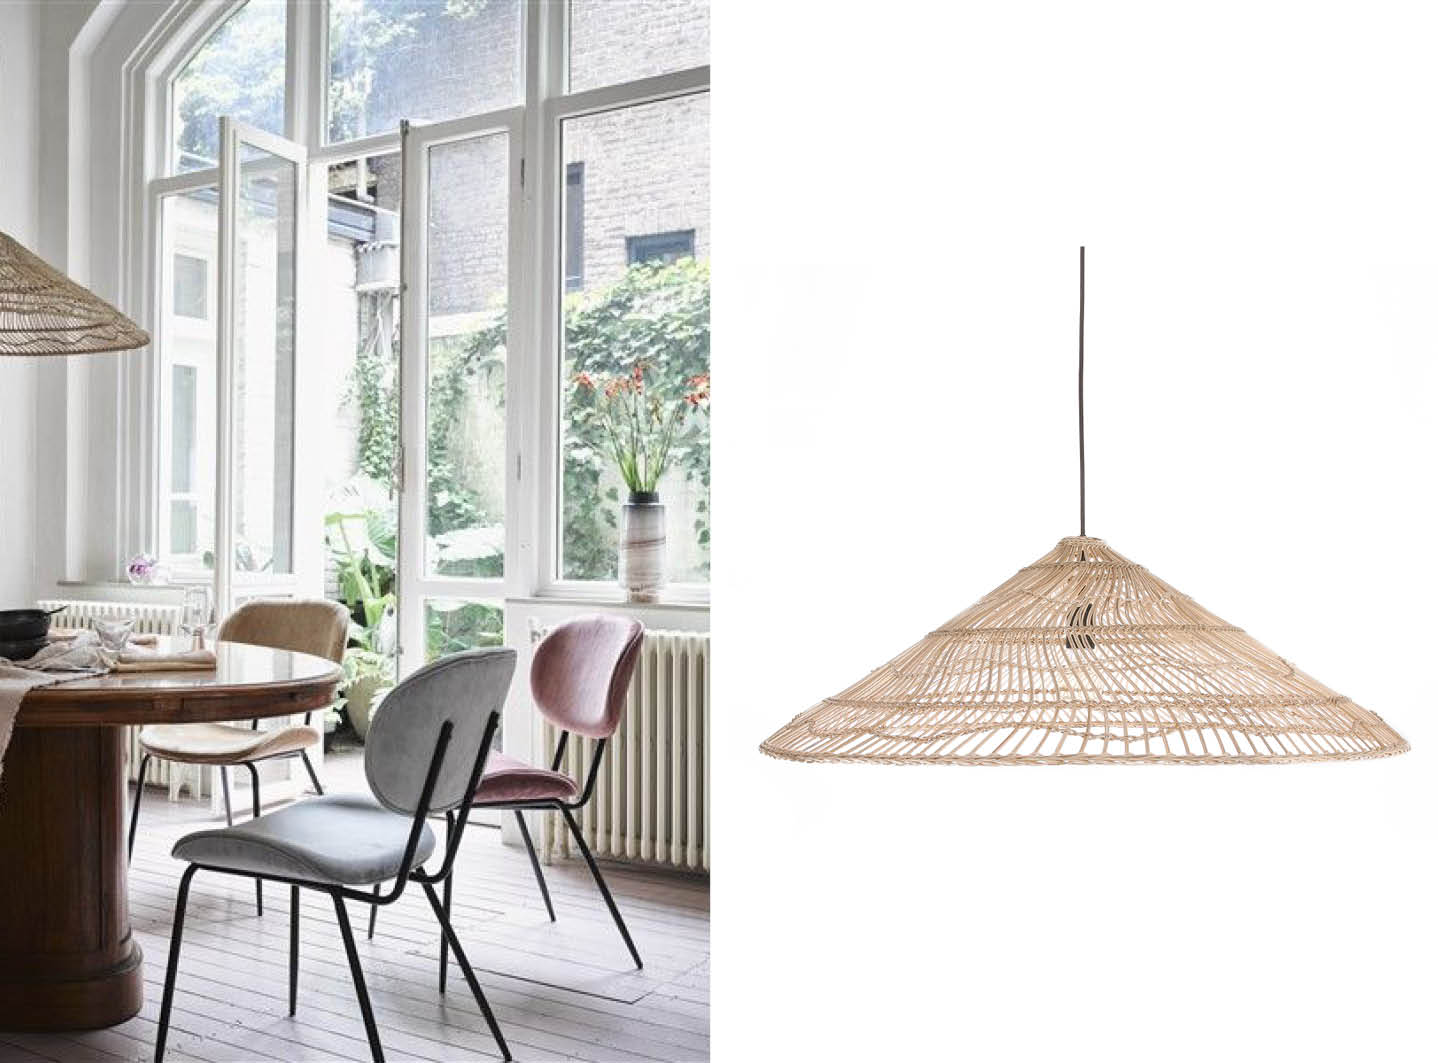 Wicker hanglamp | Cool eetkamerstoel